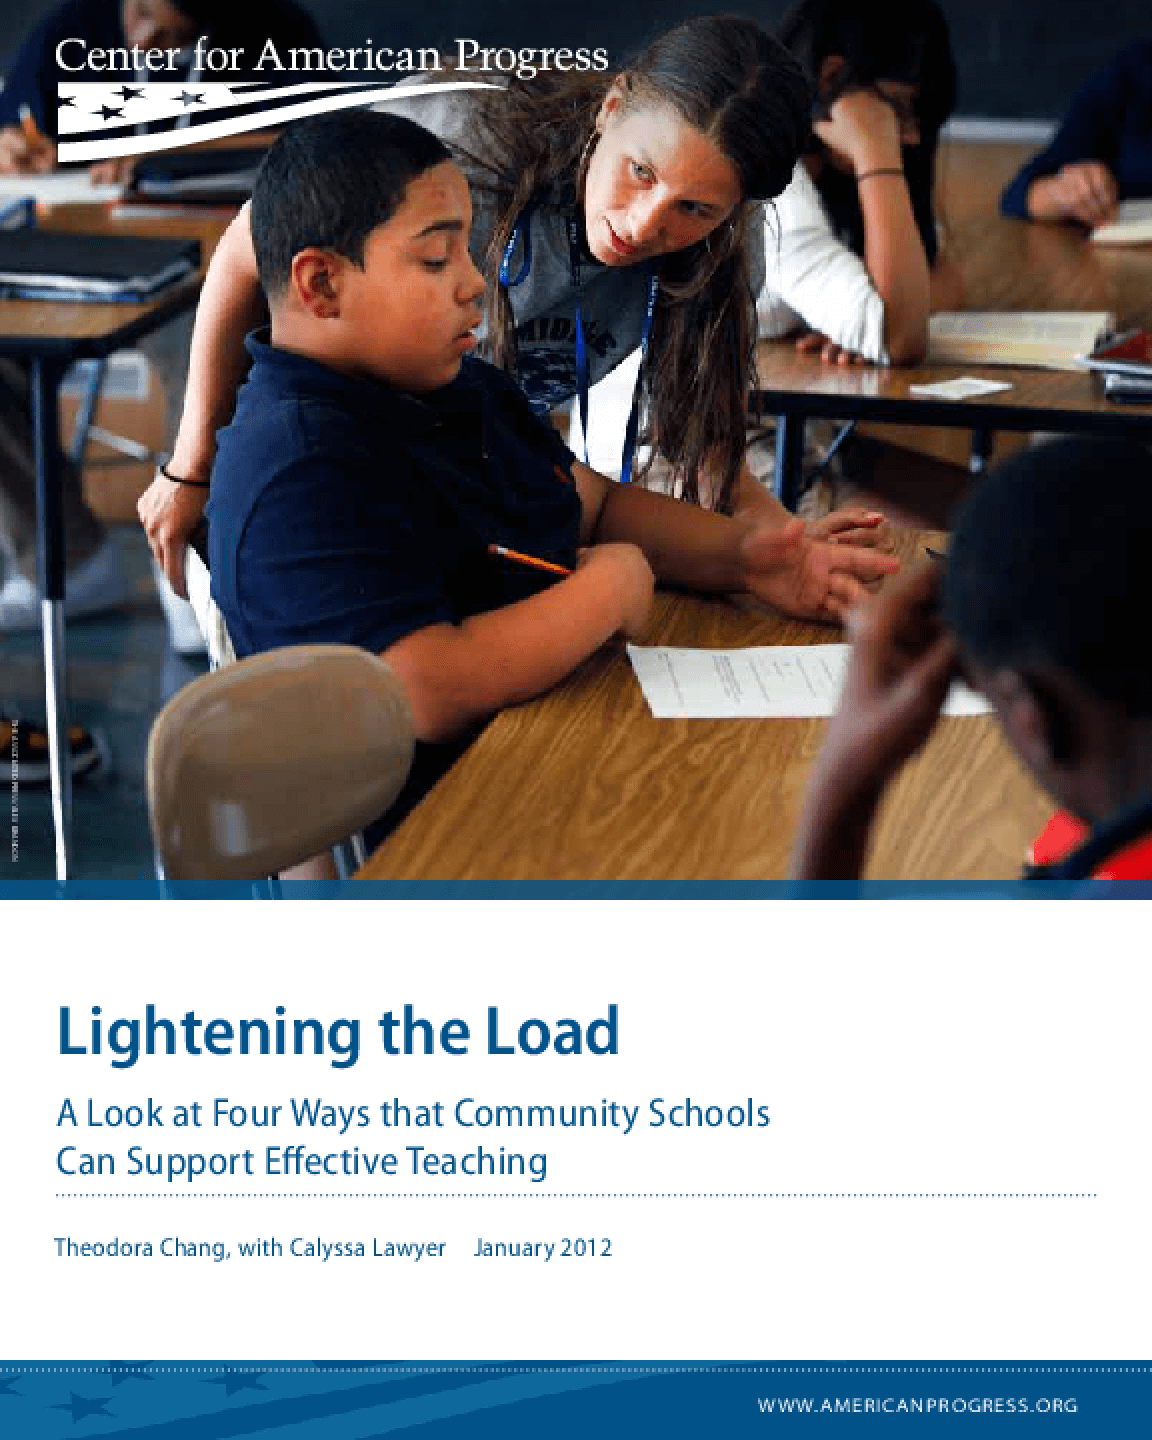 Lightening the Load: A Look at Four Ways That Community Schools Can Support Effective Teaching